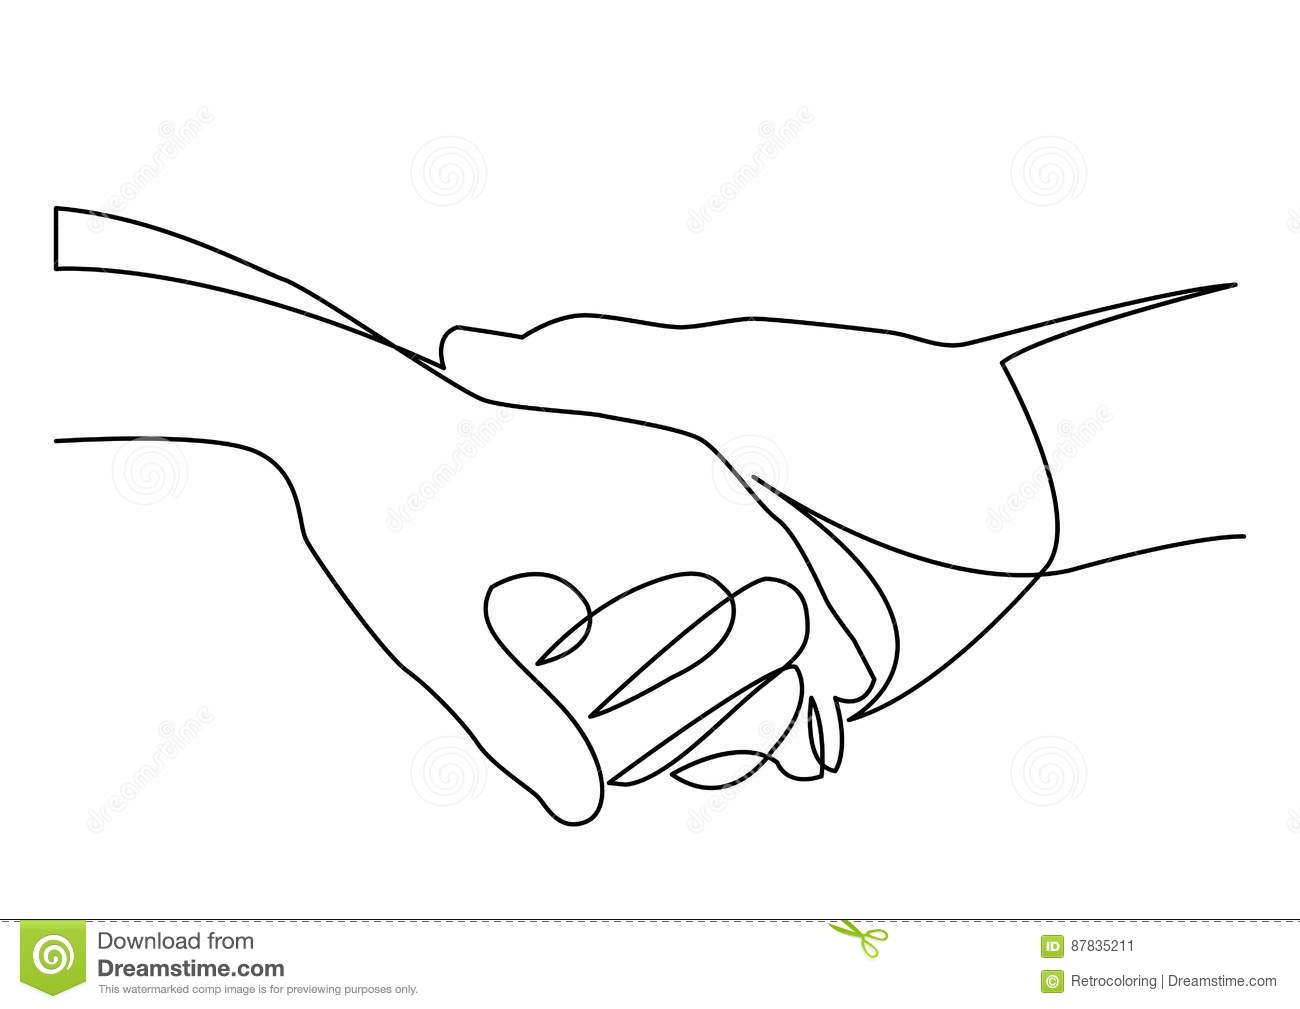 Easy Drawings Of Couples Holding Hands Tumblr Boy Art Drawings